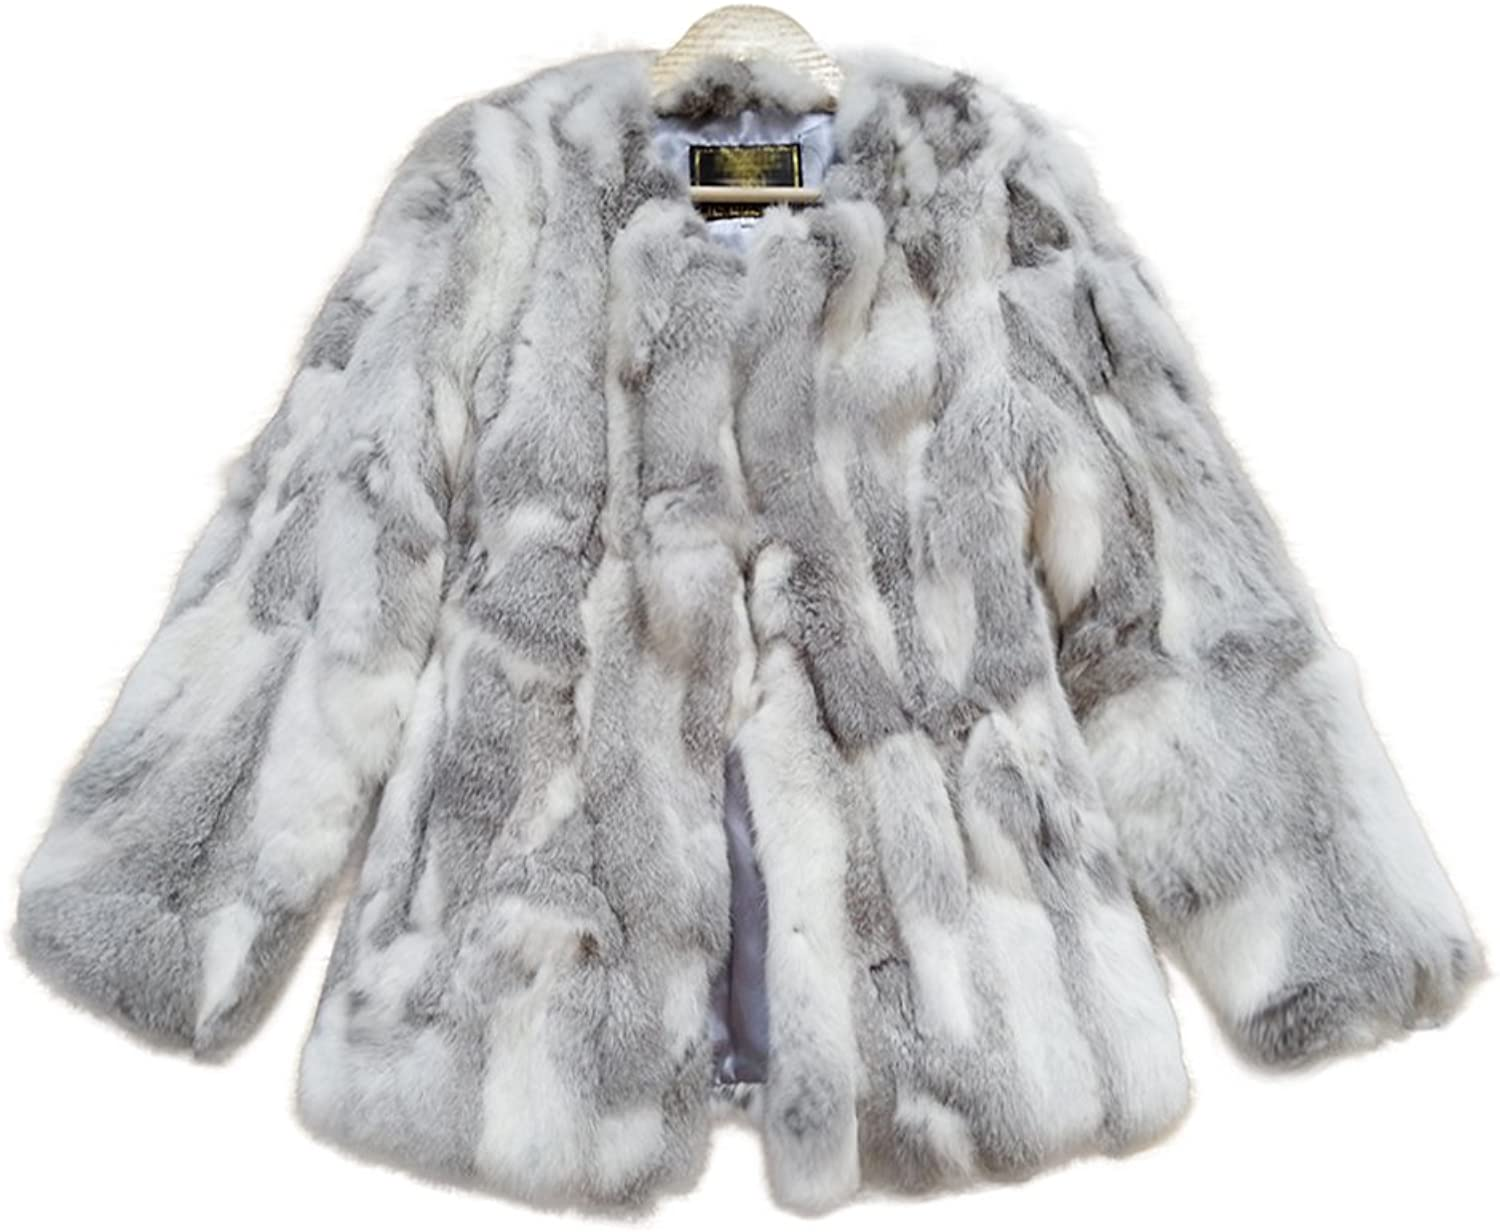 ETHEL ANDERSON Women Fur Coat  Winter Warm Real Rabbit Fur Jacket Outerwear Coat